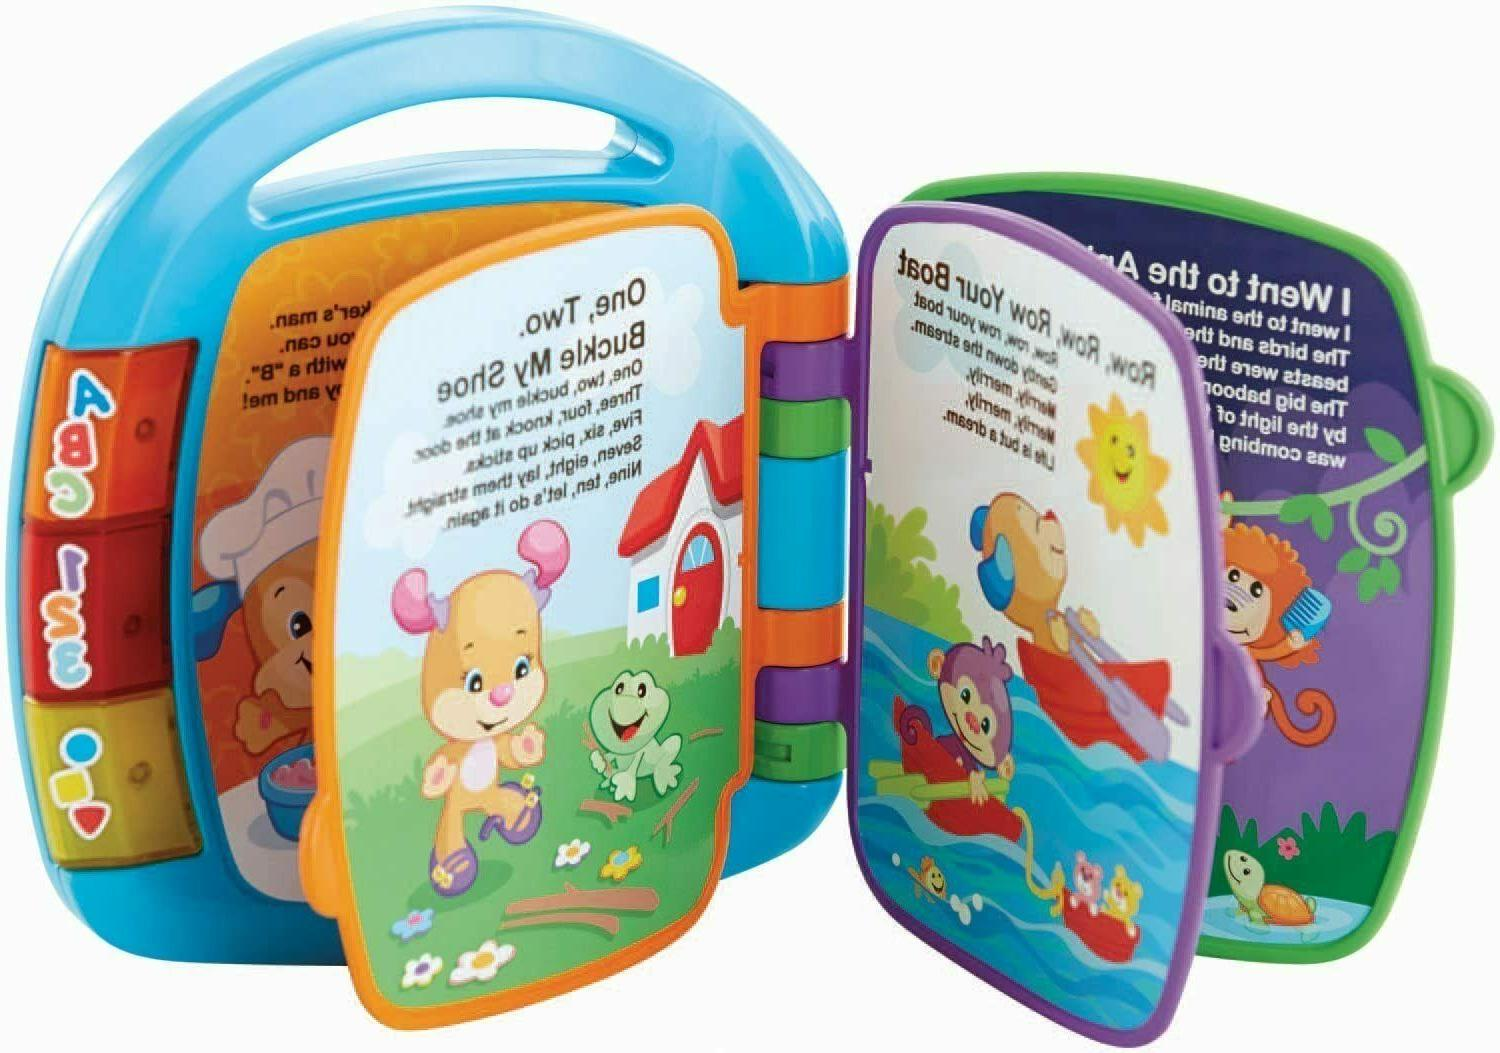 Educational Toys Months 1 3 year Old